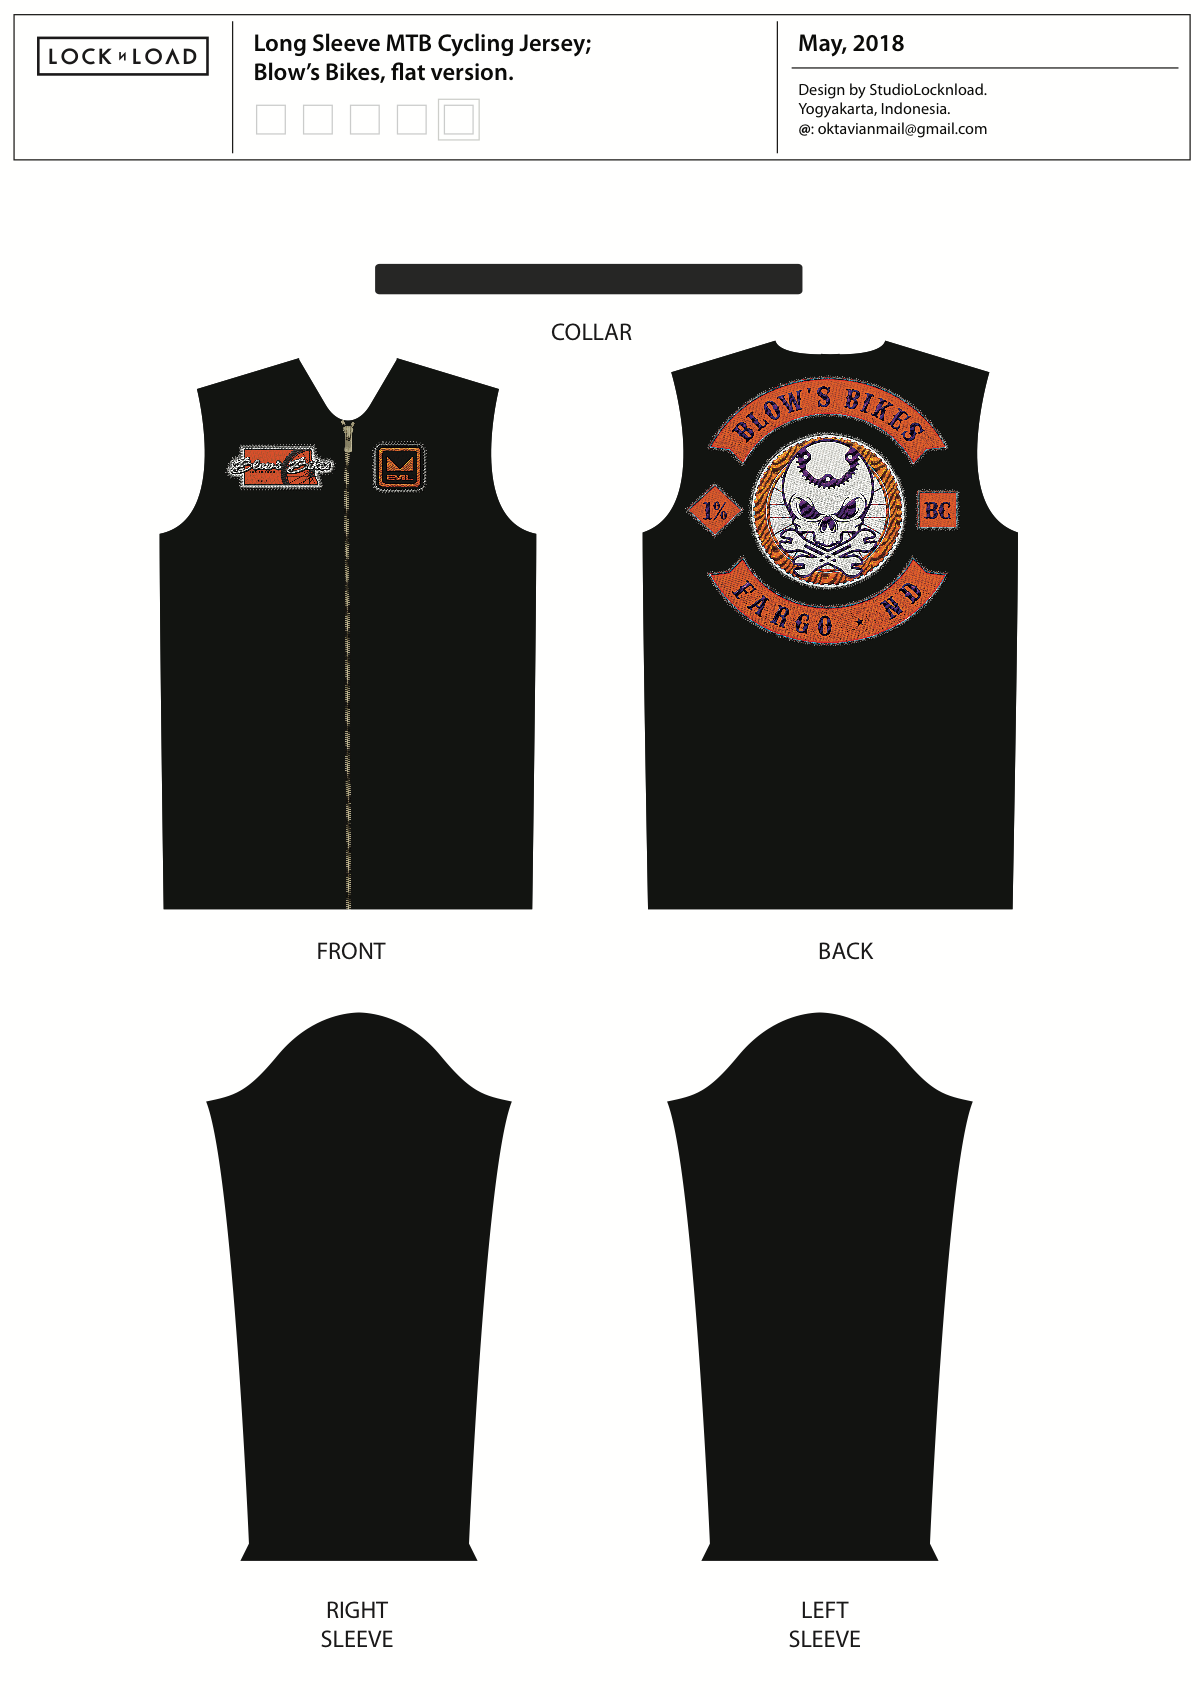 Jersey Design for Blow's Bikes